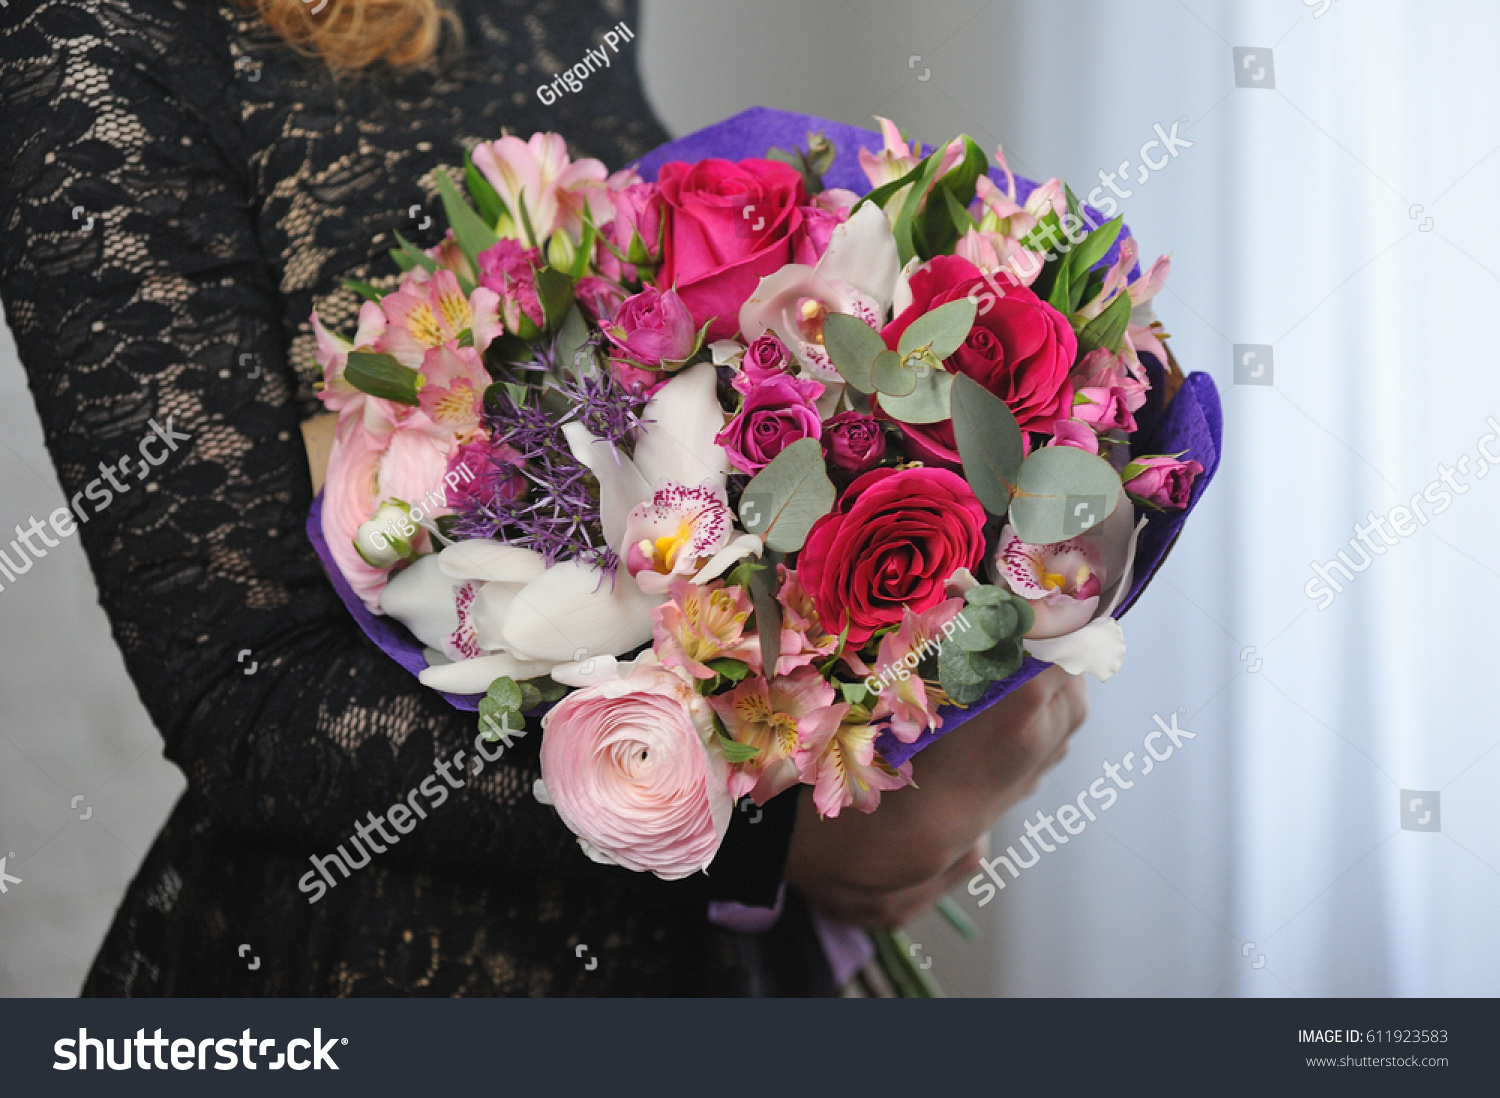 Bouquet flowers girls hands ready give stock photo edit now a bouquet of flowers in the girls hands ready to give it izmirmasajfo